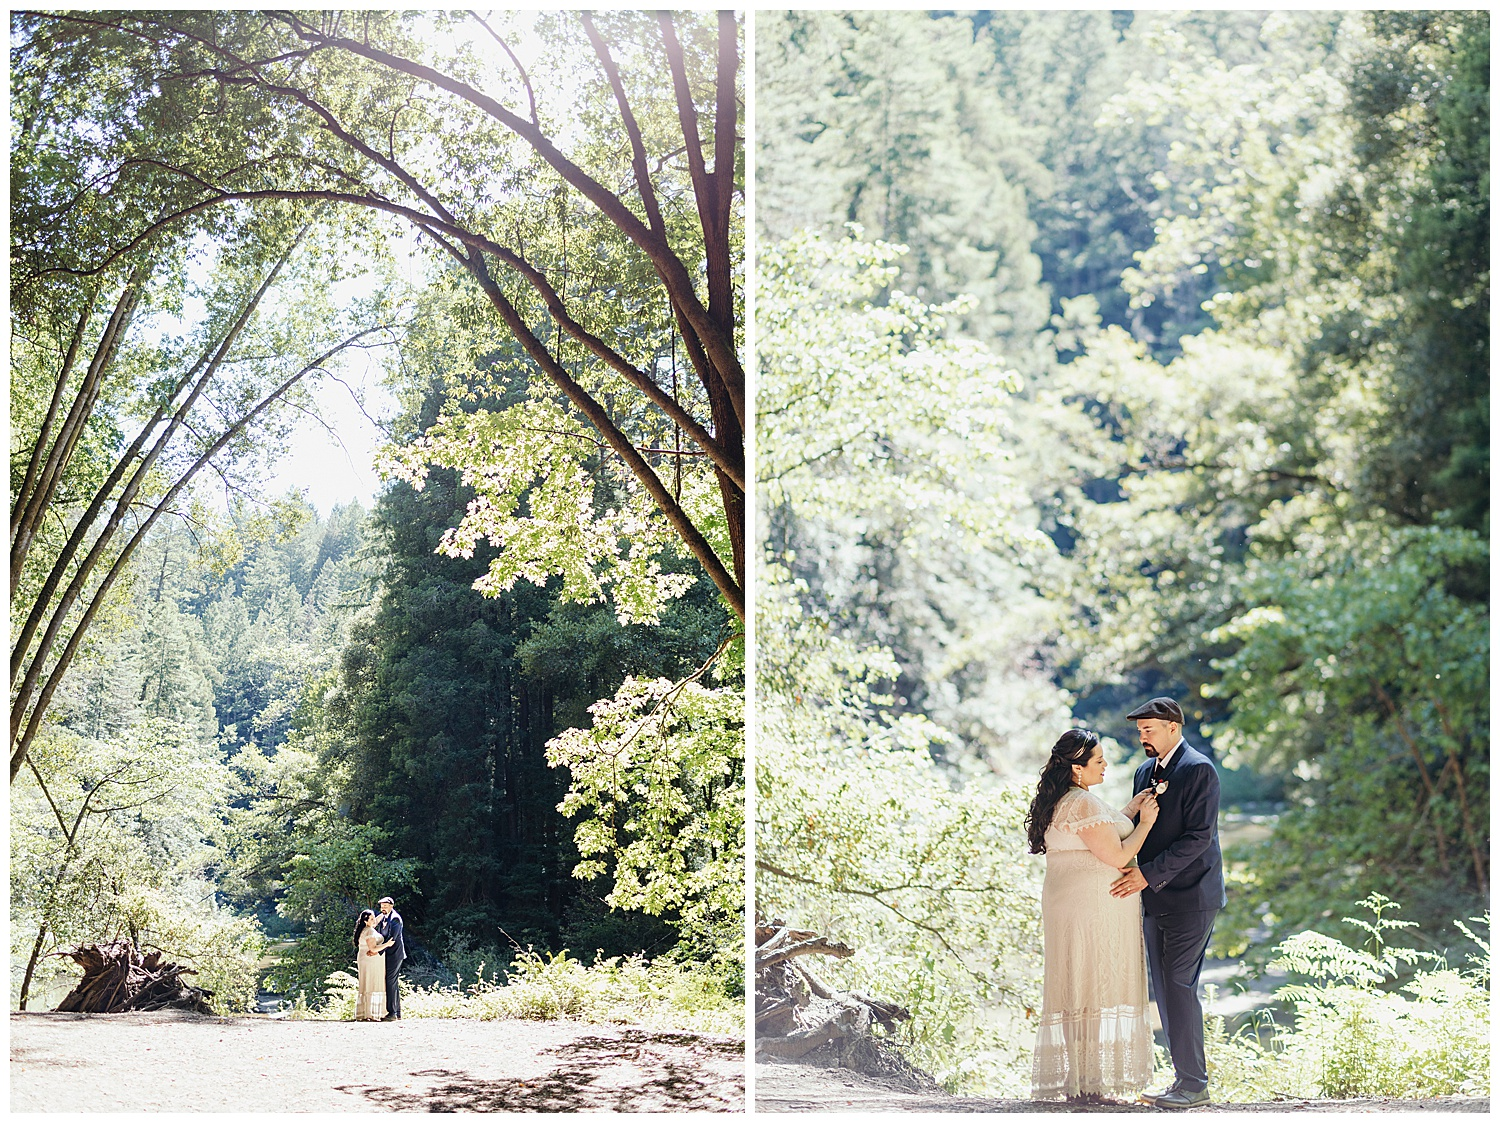 Wedding portraits under large trees in Henry Cowell redwoods